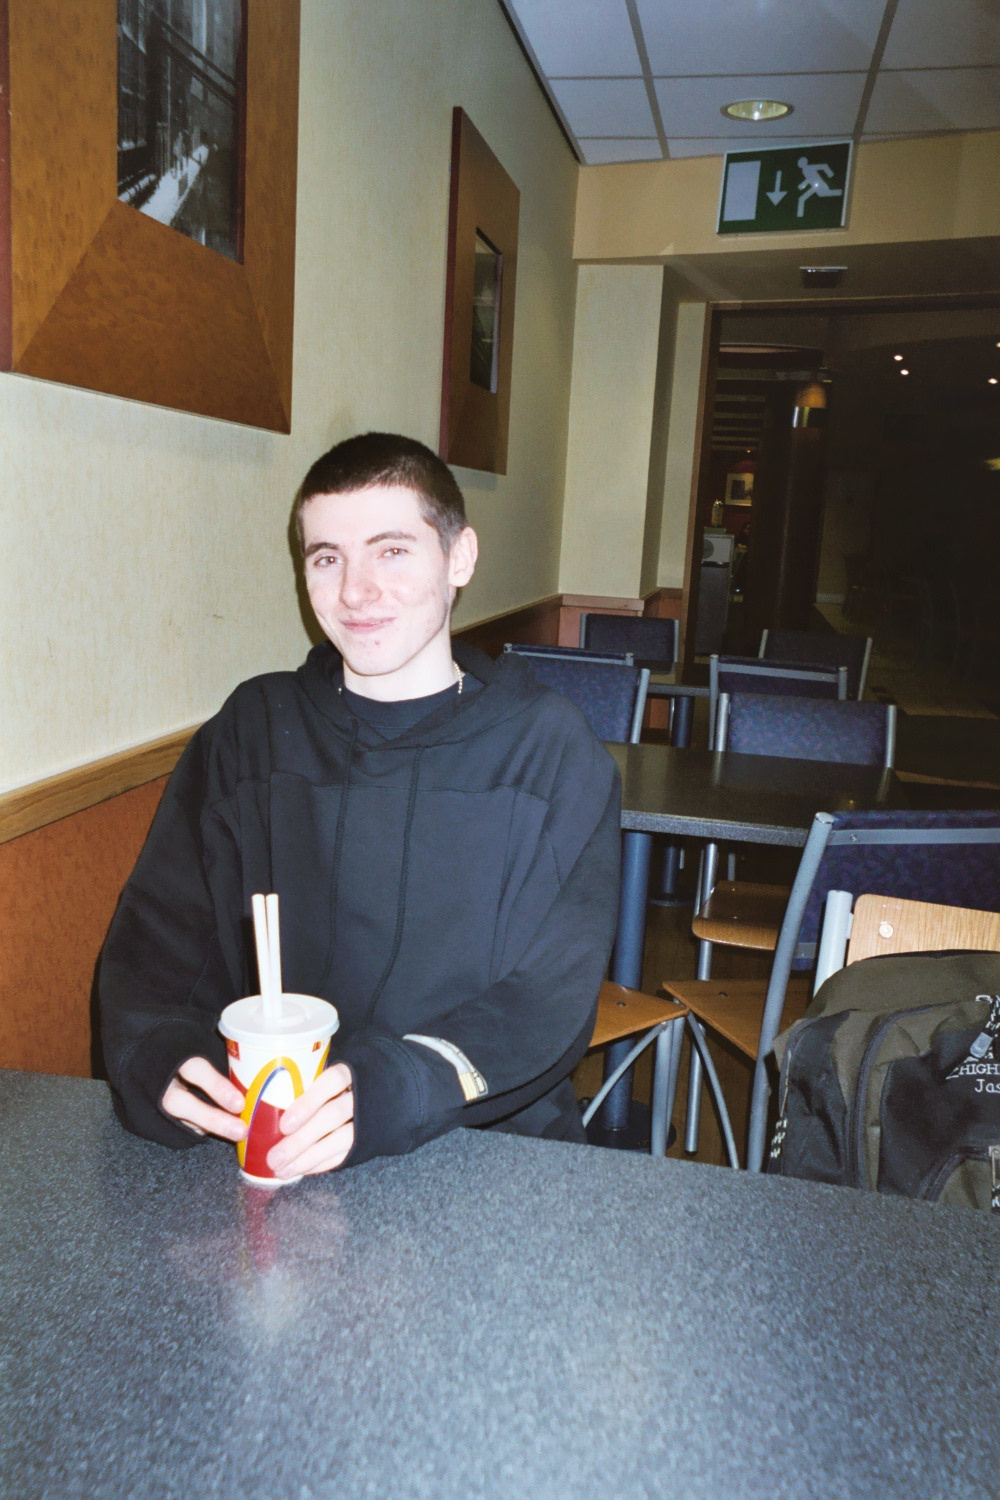 Me at McDonald's, St Ann's Square, Manchester